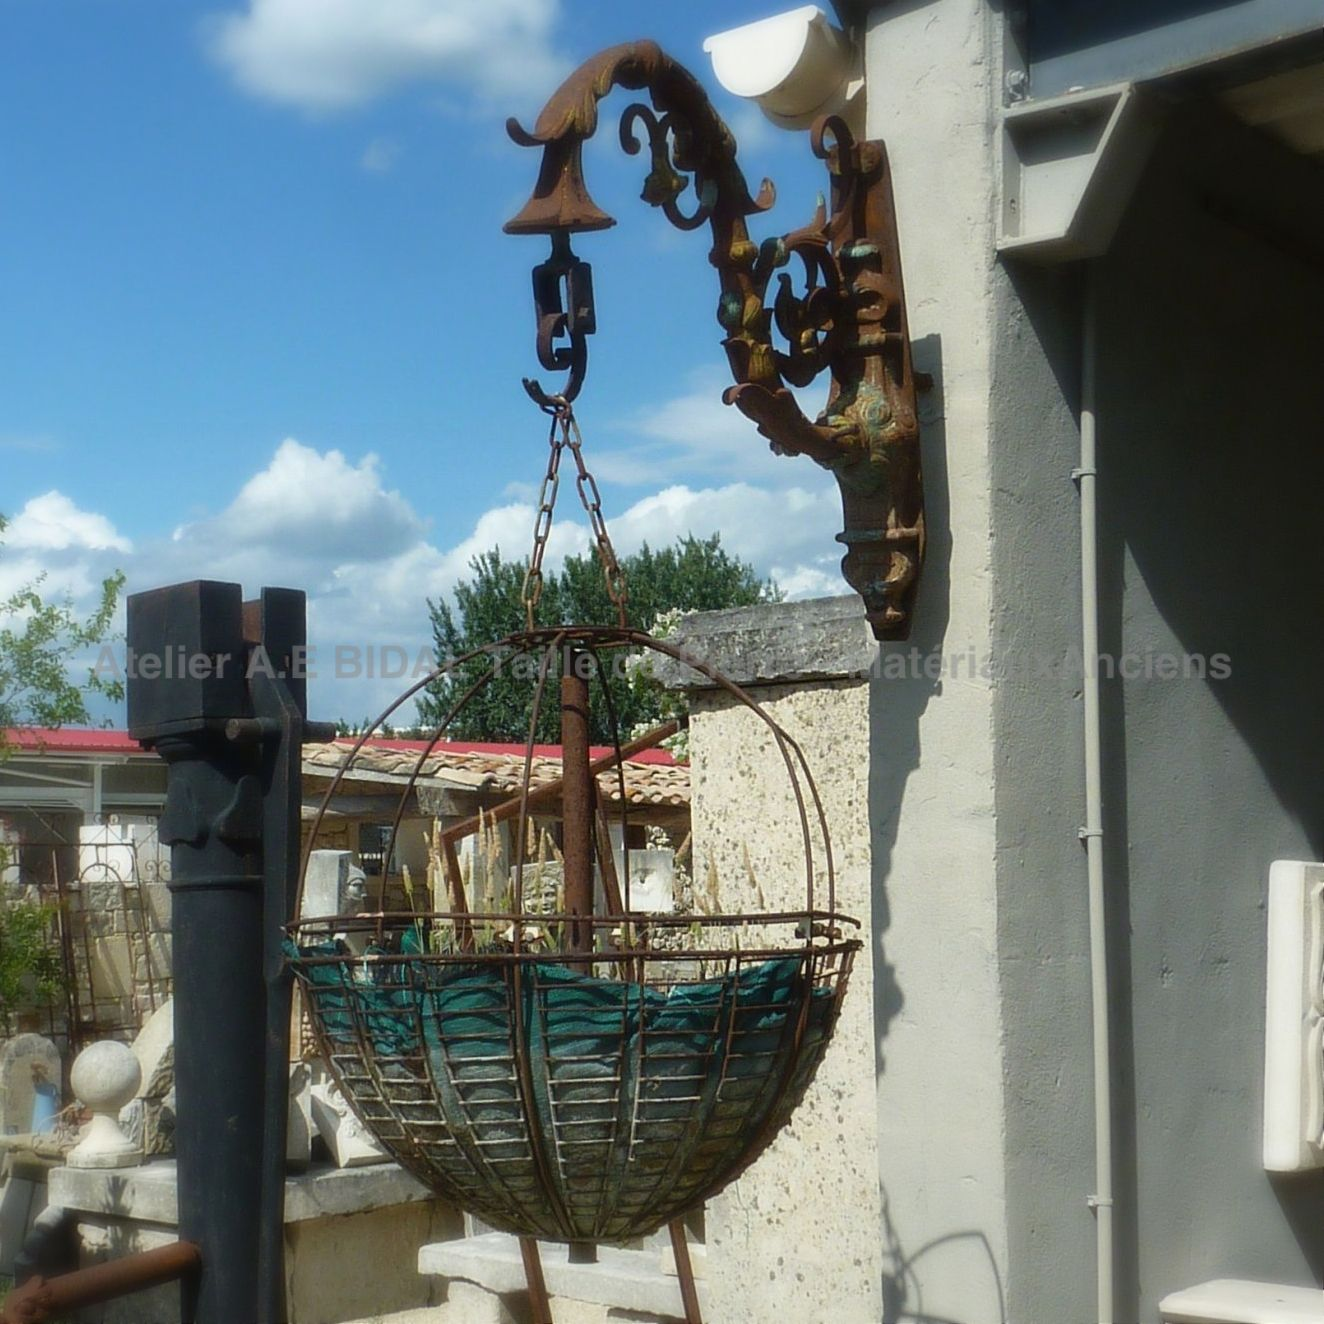 Planter in wrought iron situation - decoration objects in old materials.